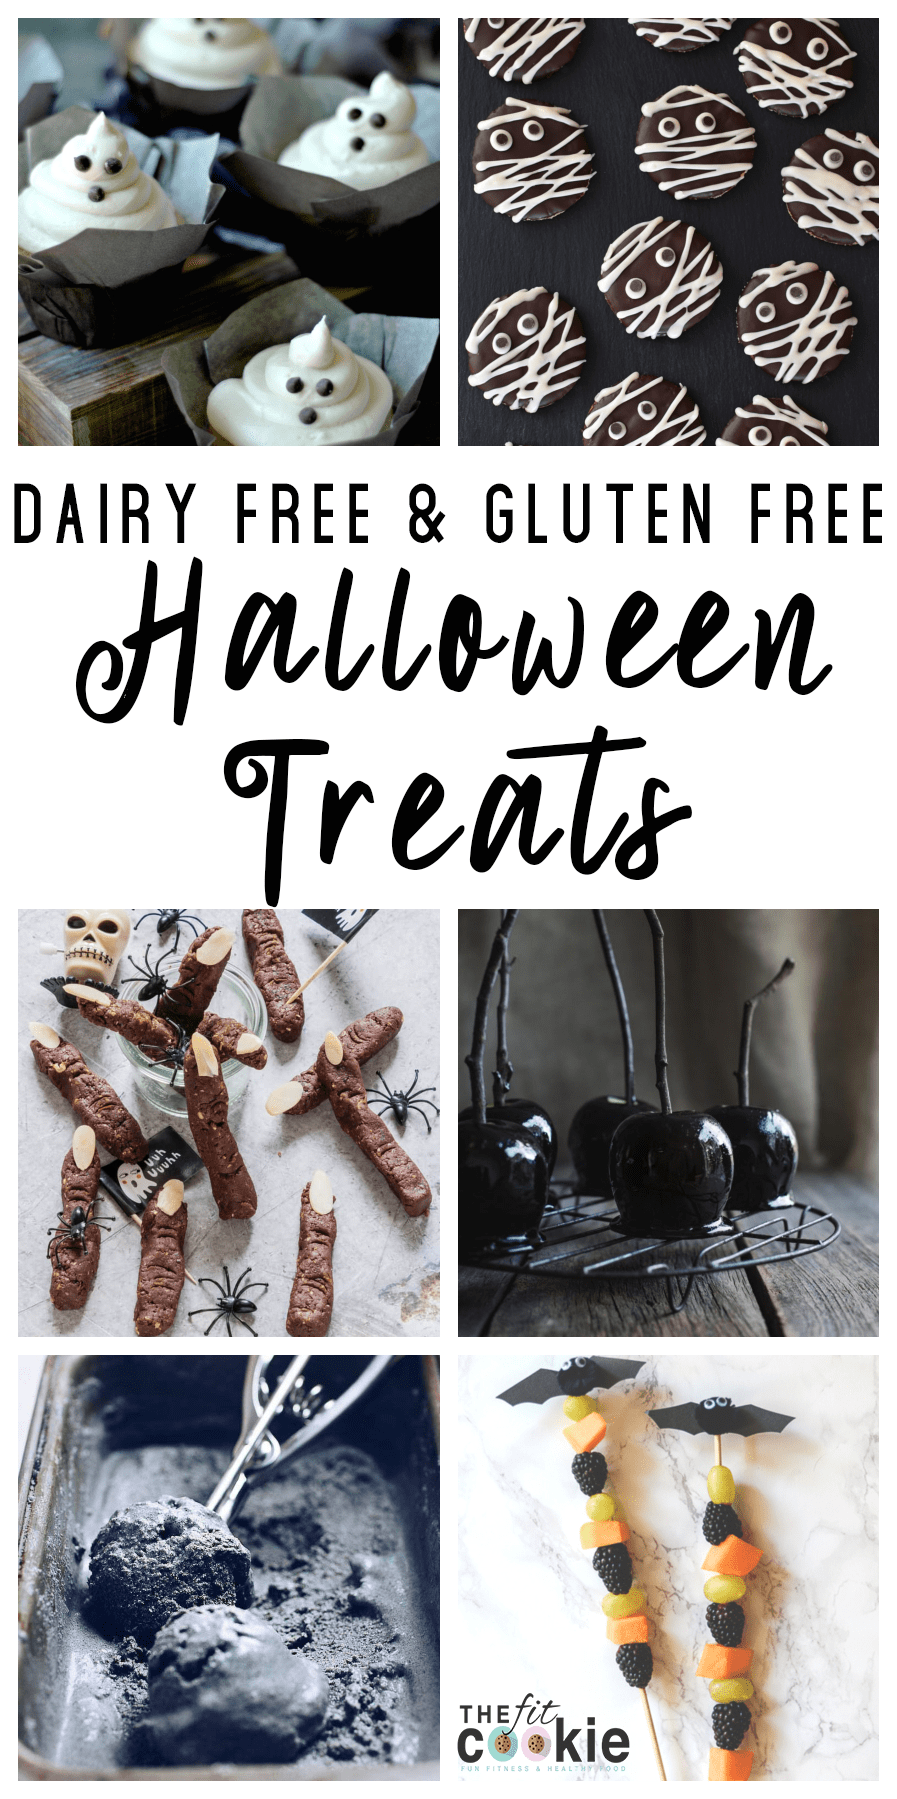 if your family or friends have food allergies here are some fun dairy free and